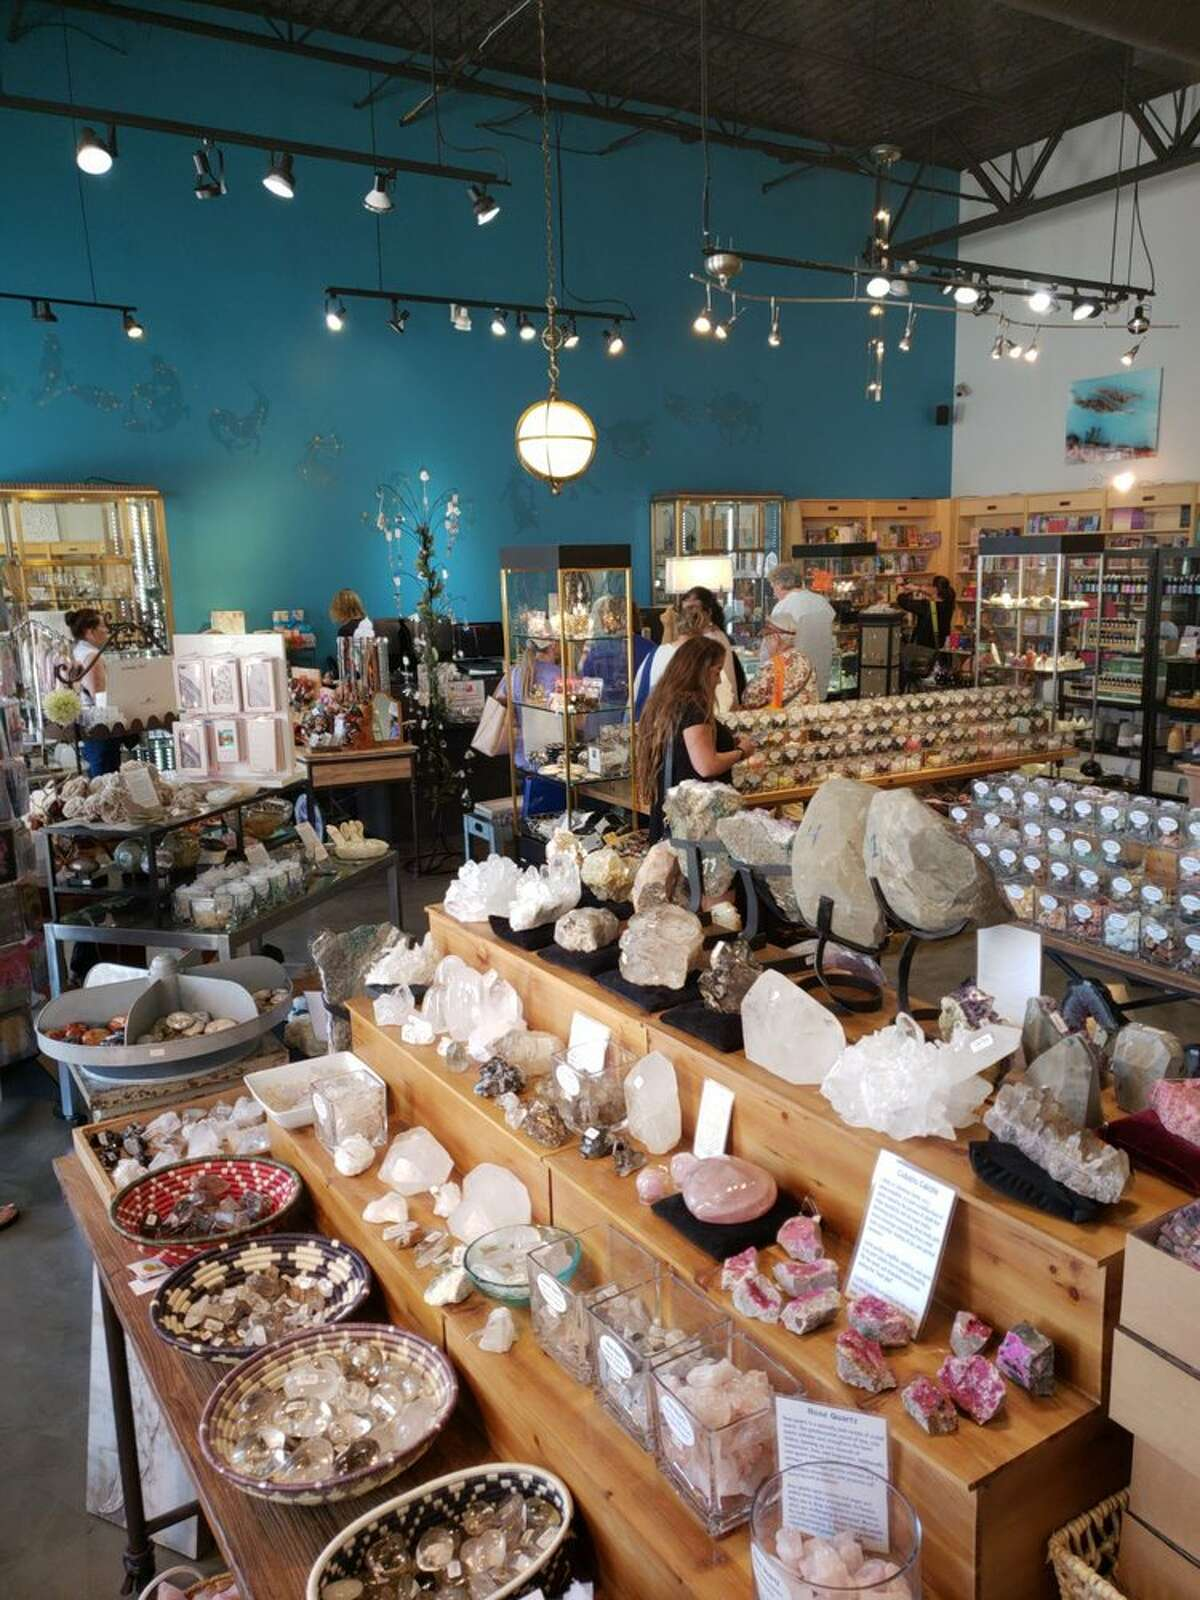 Body Mind & Soul7951 Katy Fwy., Ste. N, Houston (Memorial)Re-align your energies at this unique gift shop that sells healing crystals, sage, stones and more. Photo by: Brandy L/Yelp